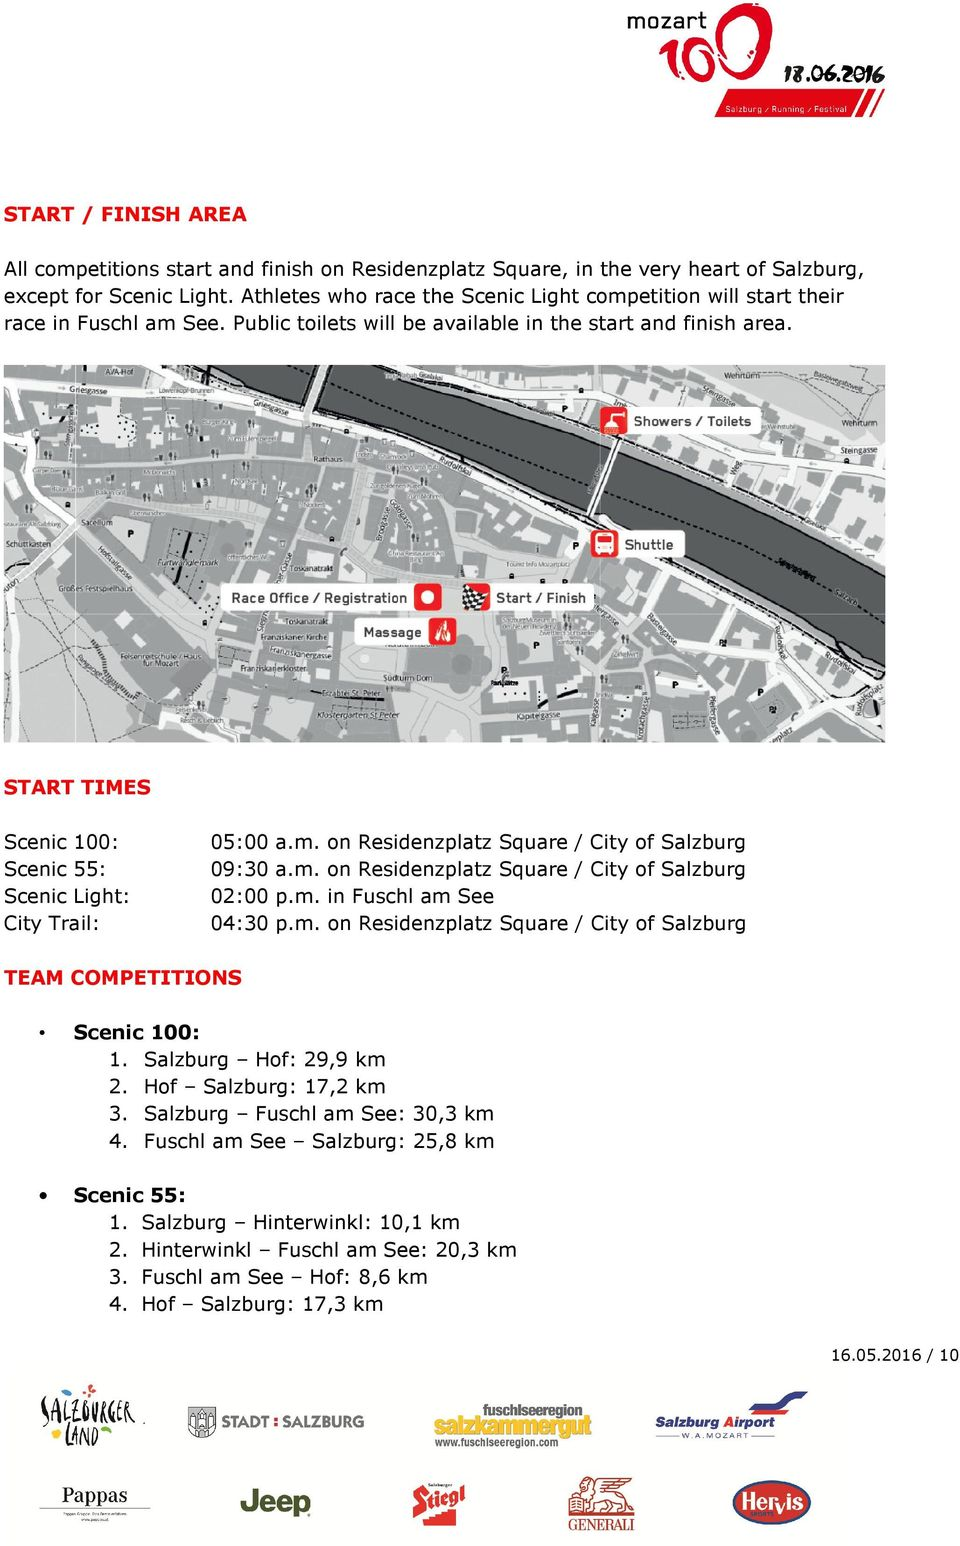 START TIMES Scenic 100: Scenic 55: Scenic Light: City Trail: 05:00 a.m. on Residenzplatz Square / City of Salzburg 09:30 a.m. on Residenzplatz Square / City of Salzburg 02:00 p.m. in Fuschl am See 04:30 p.